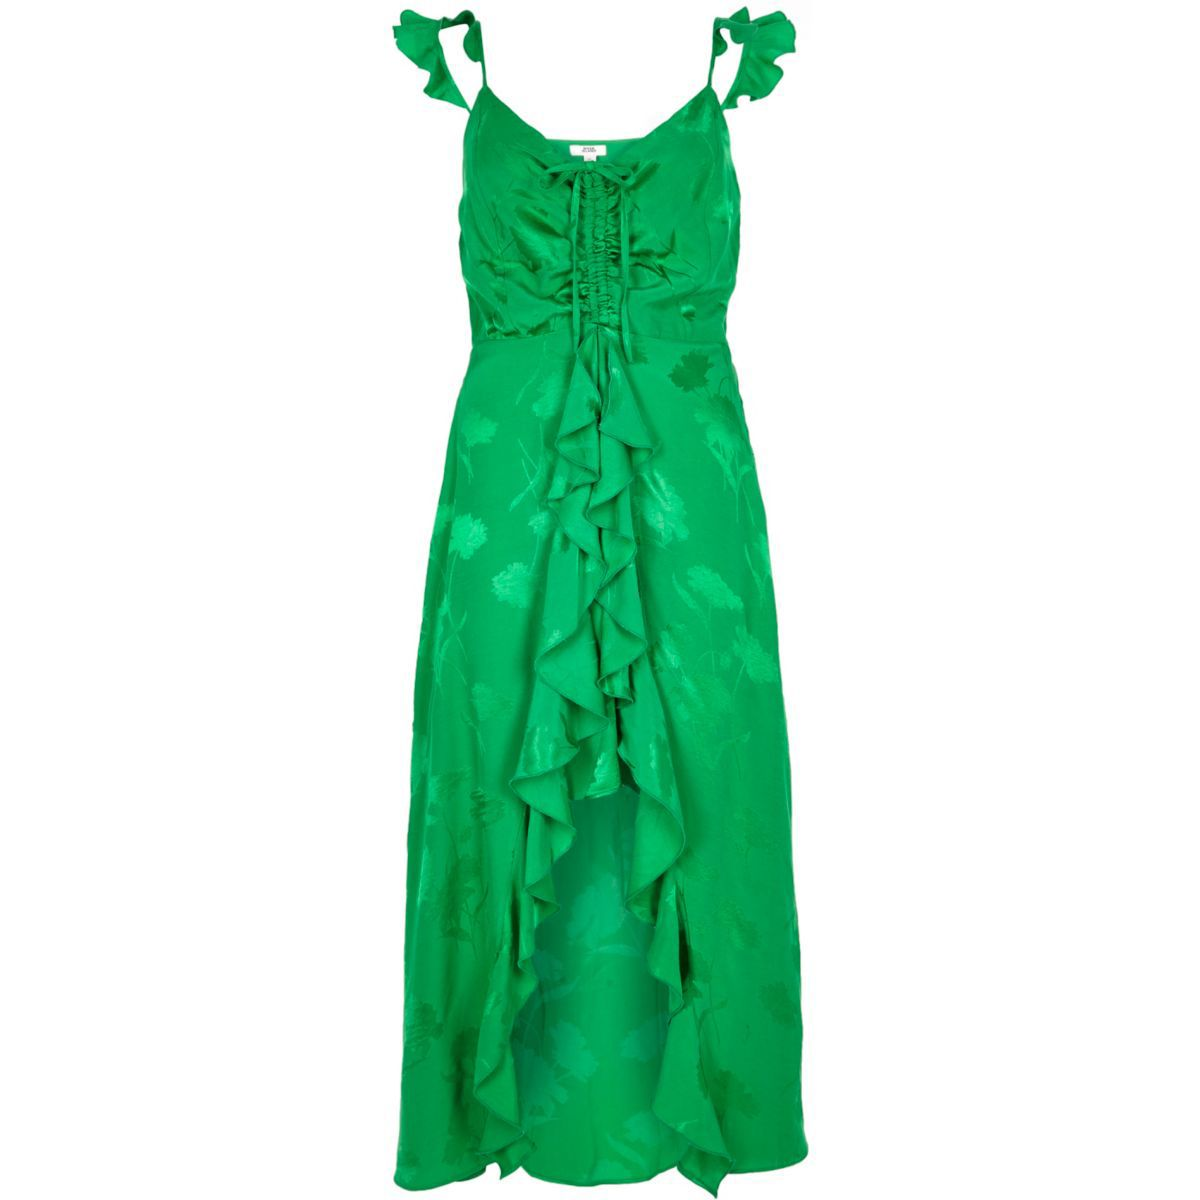 49 Wedding Guest Dresses Under 150 That Look So Expensive